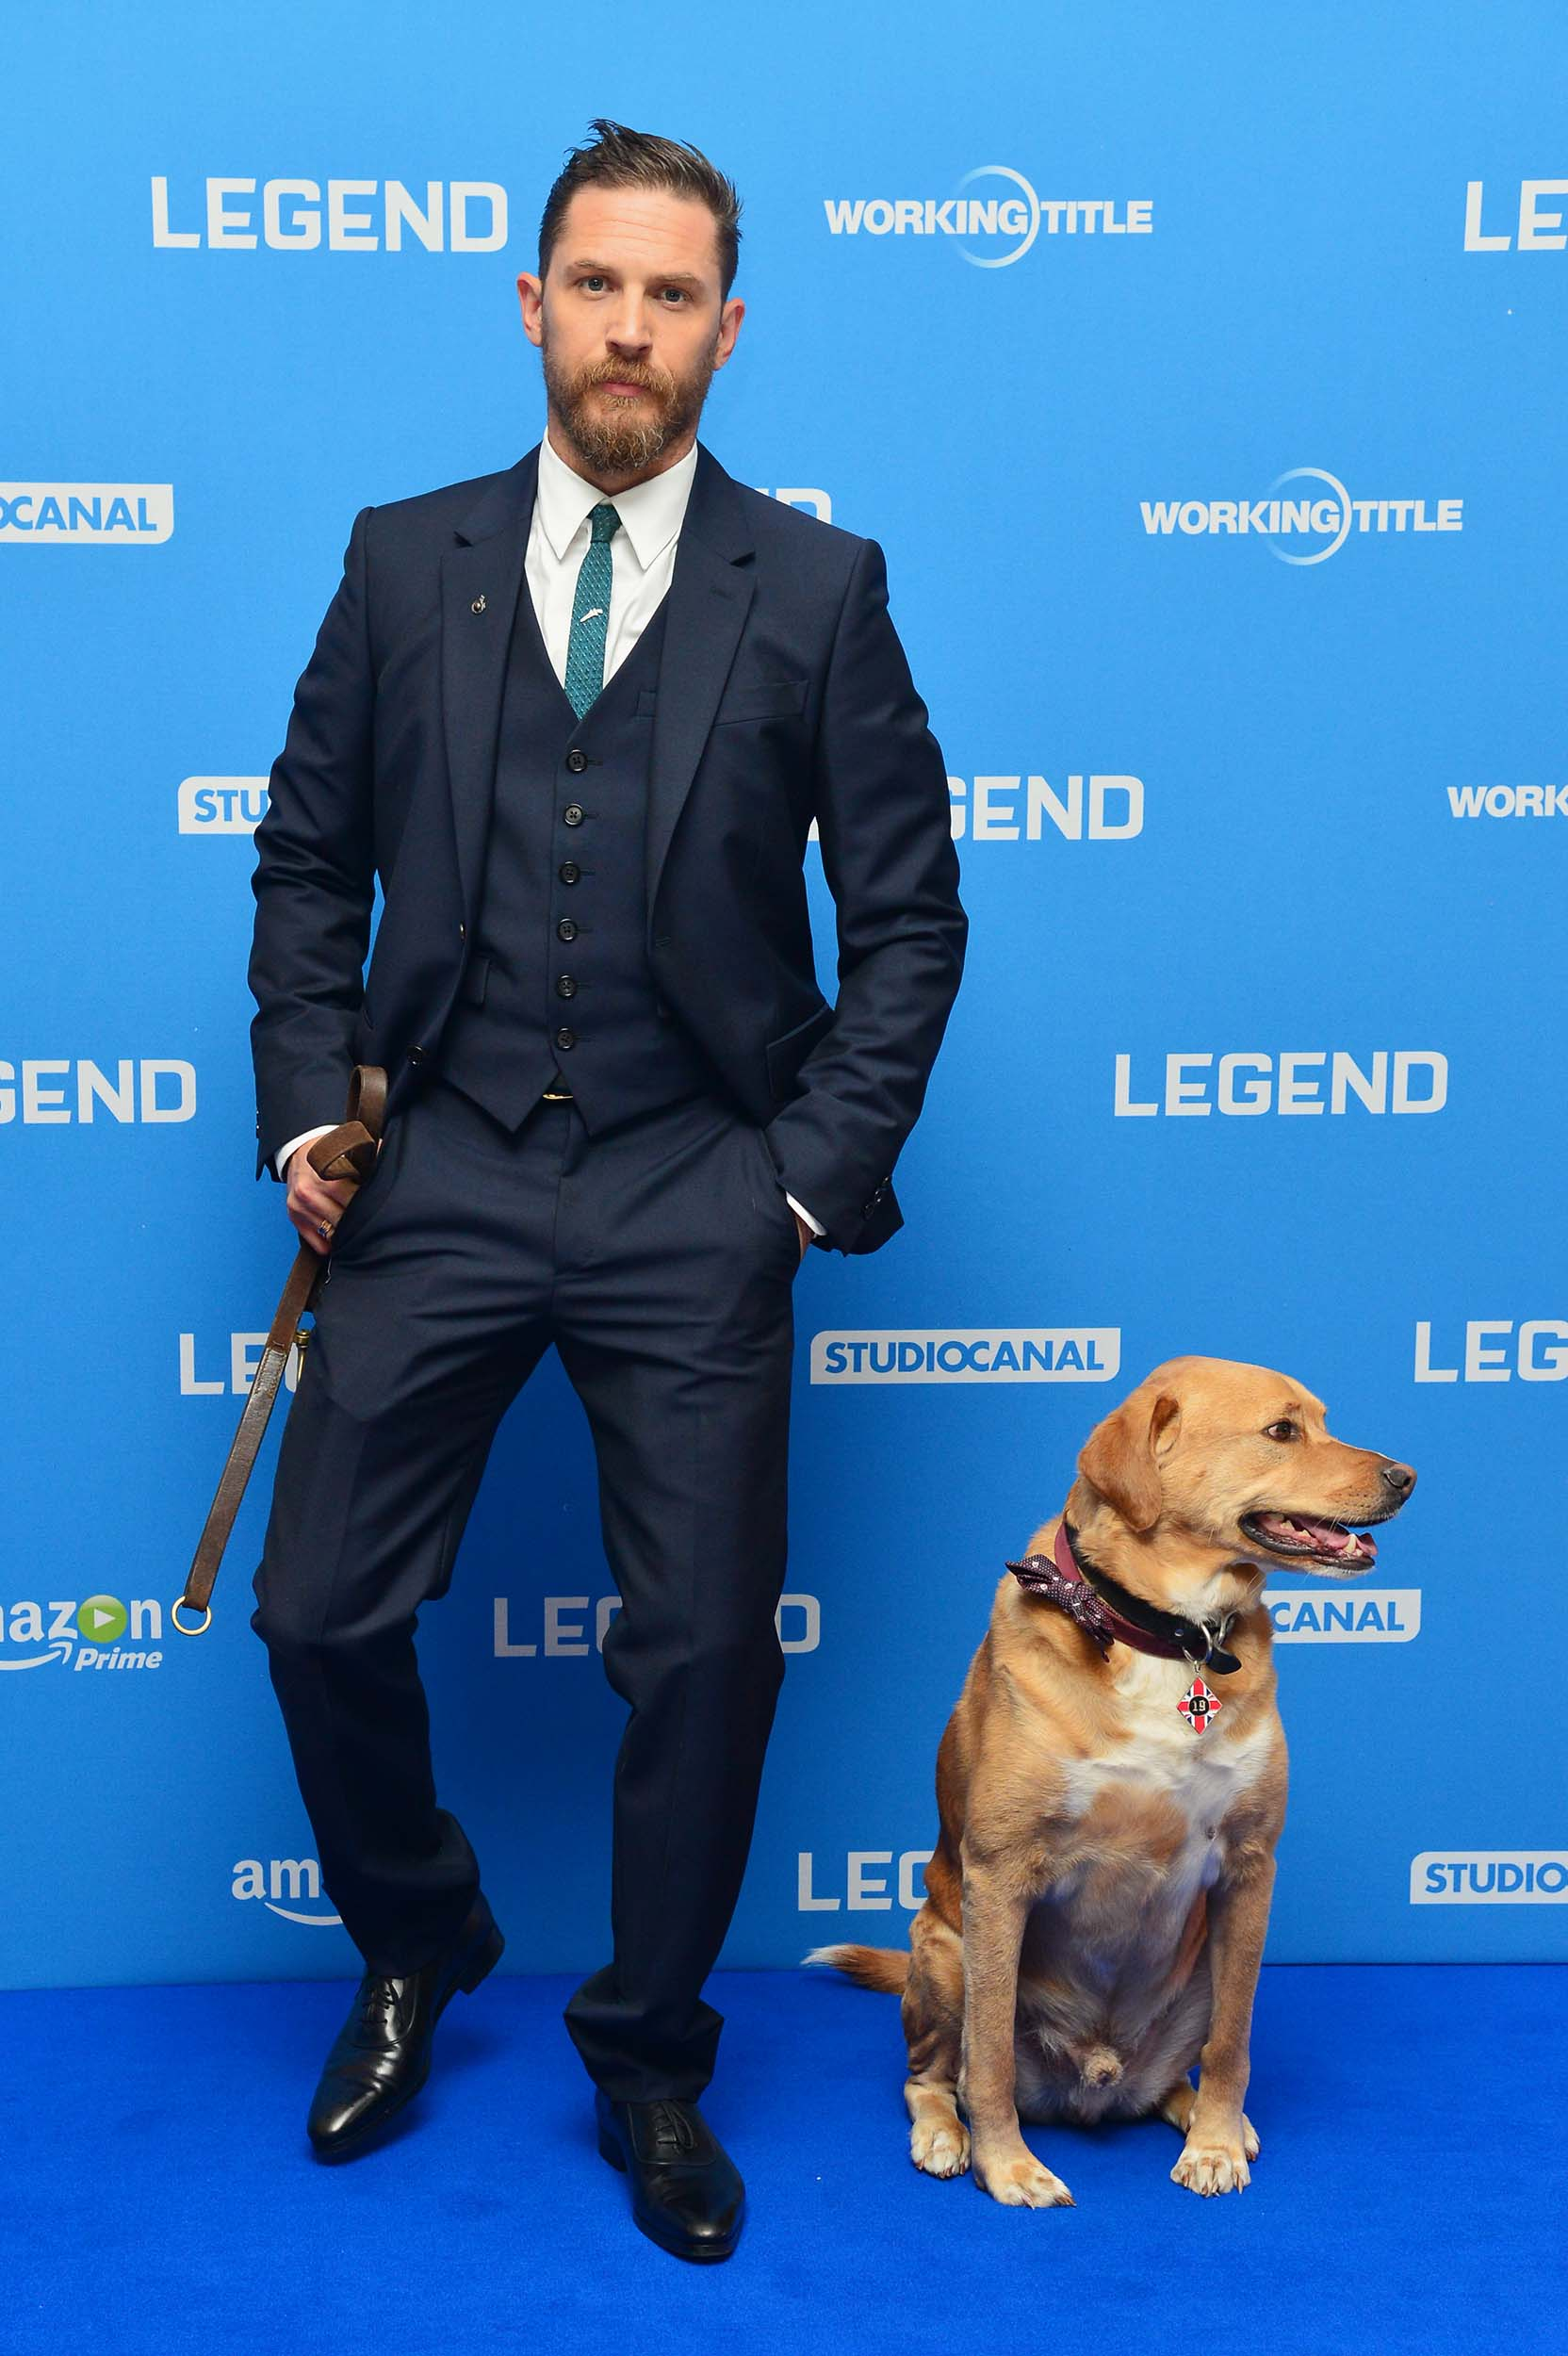 'Legend World Premiere' at the Odeon Leicester Square Tom Hardy and His Dog Woody'Legend' World Premiere - 03 Sep 2015